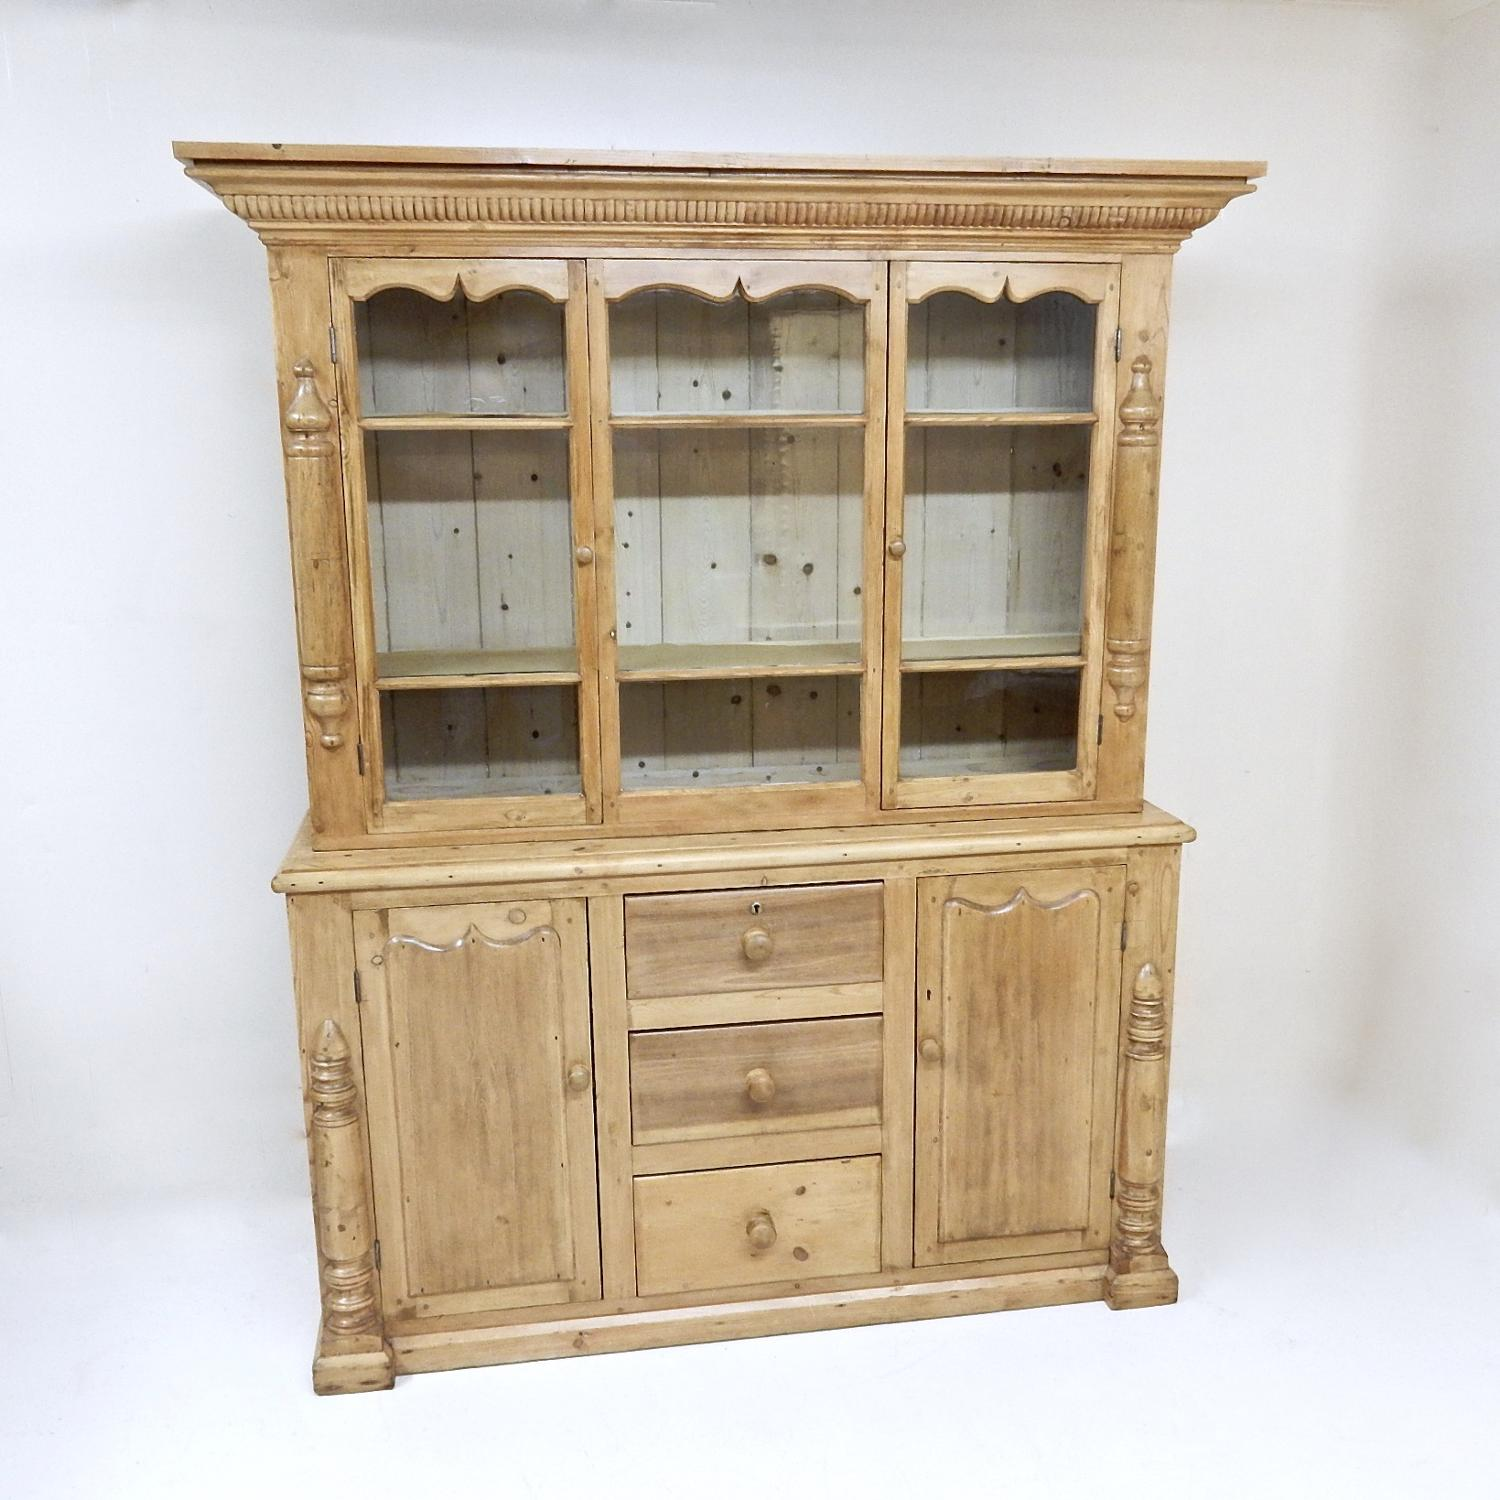 West Country Pine Dresser